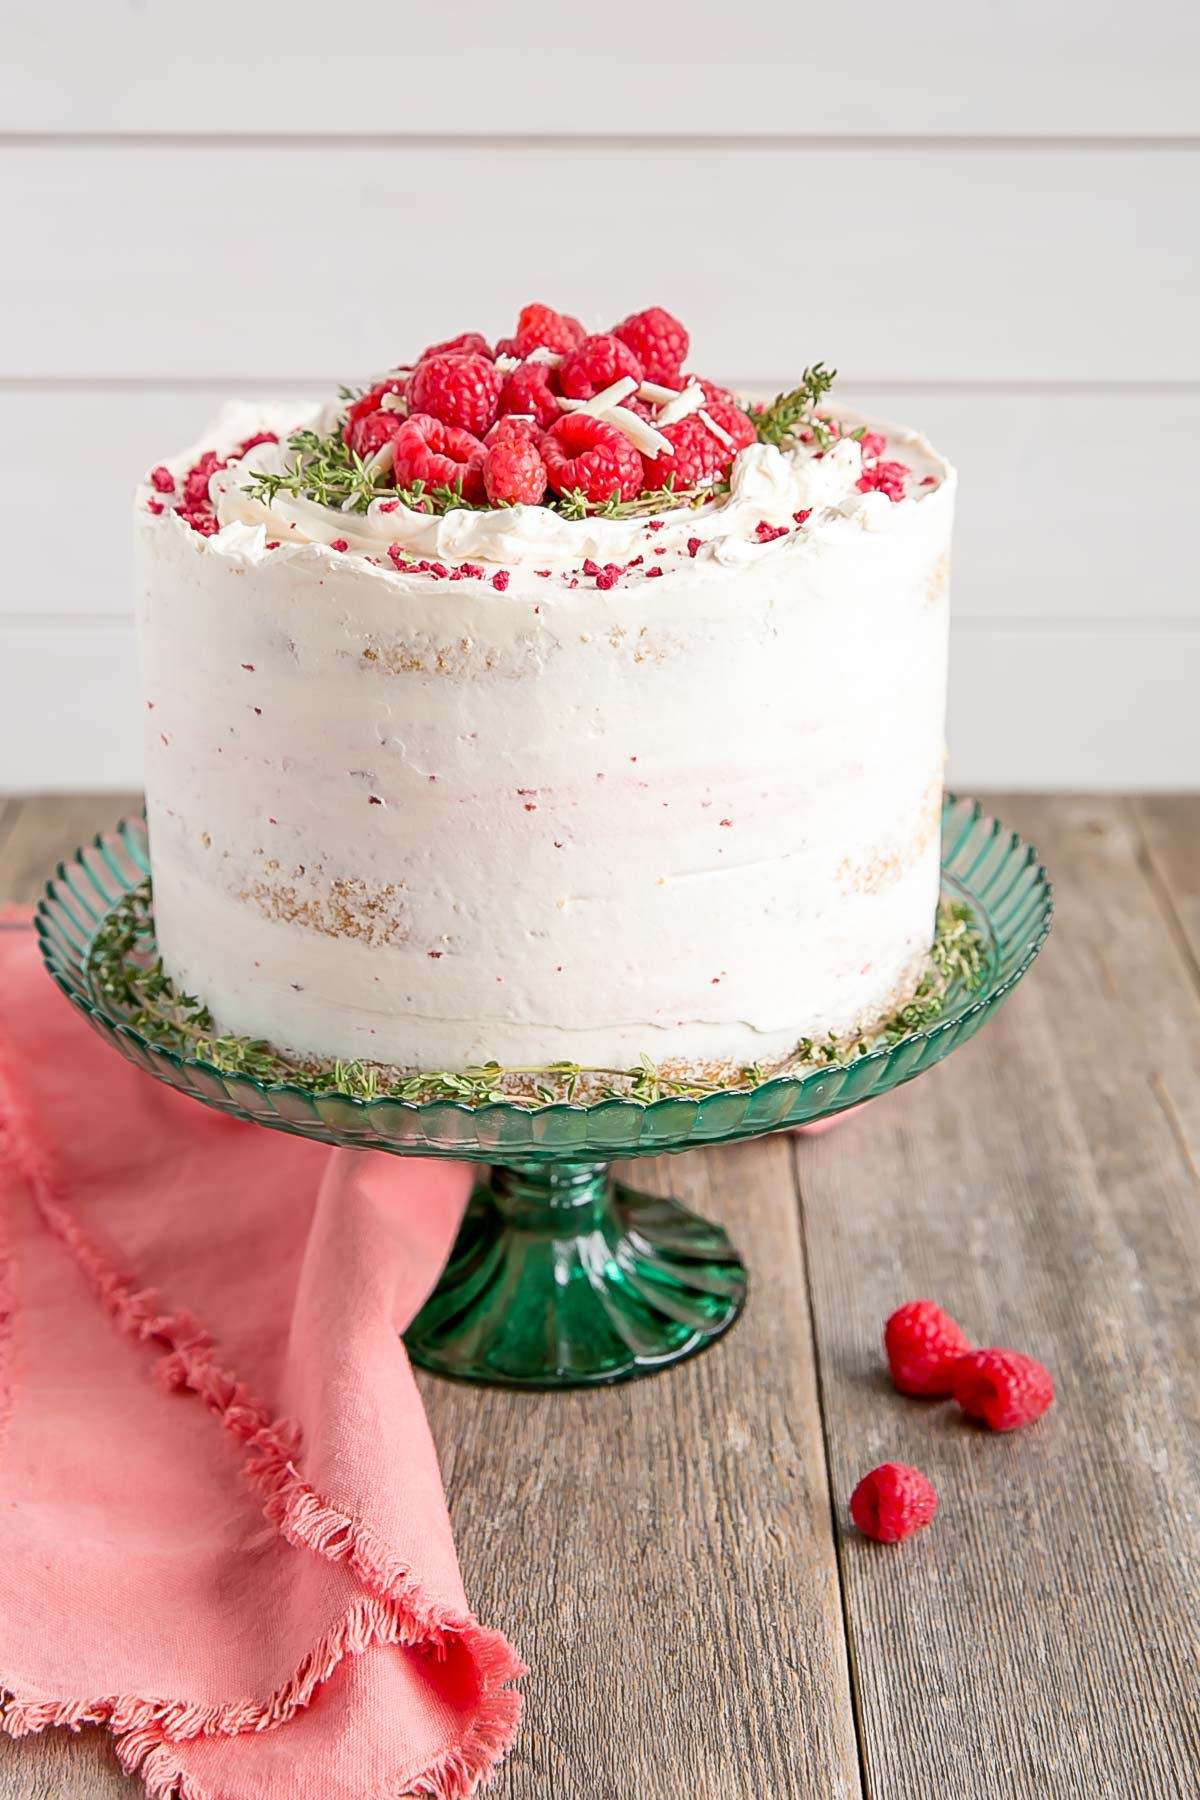 Rustic white chocolate raspberry cake with thyme sprigs.